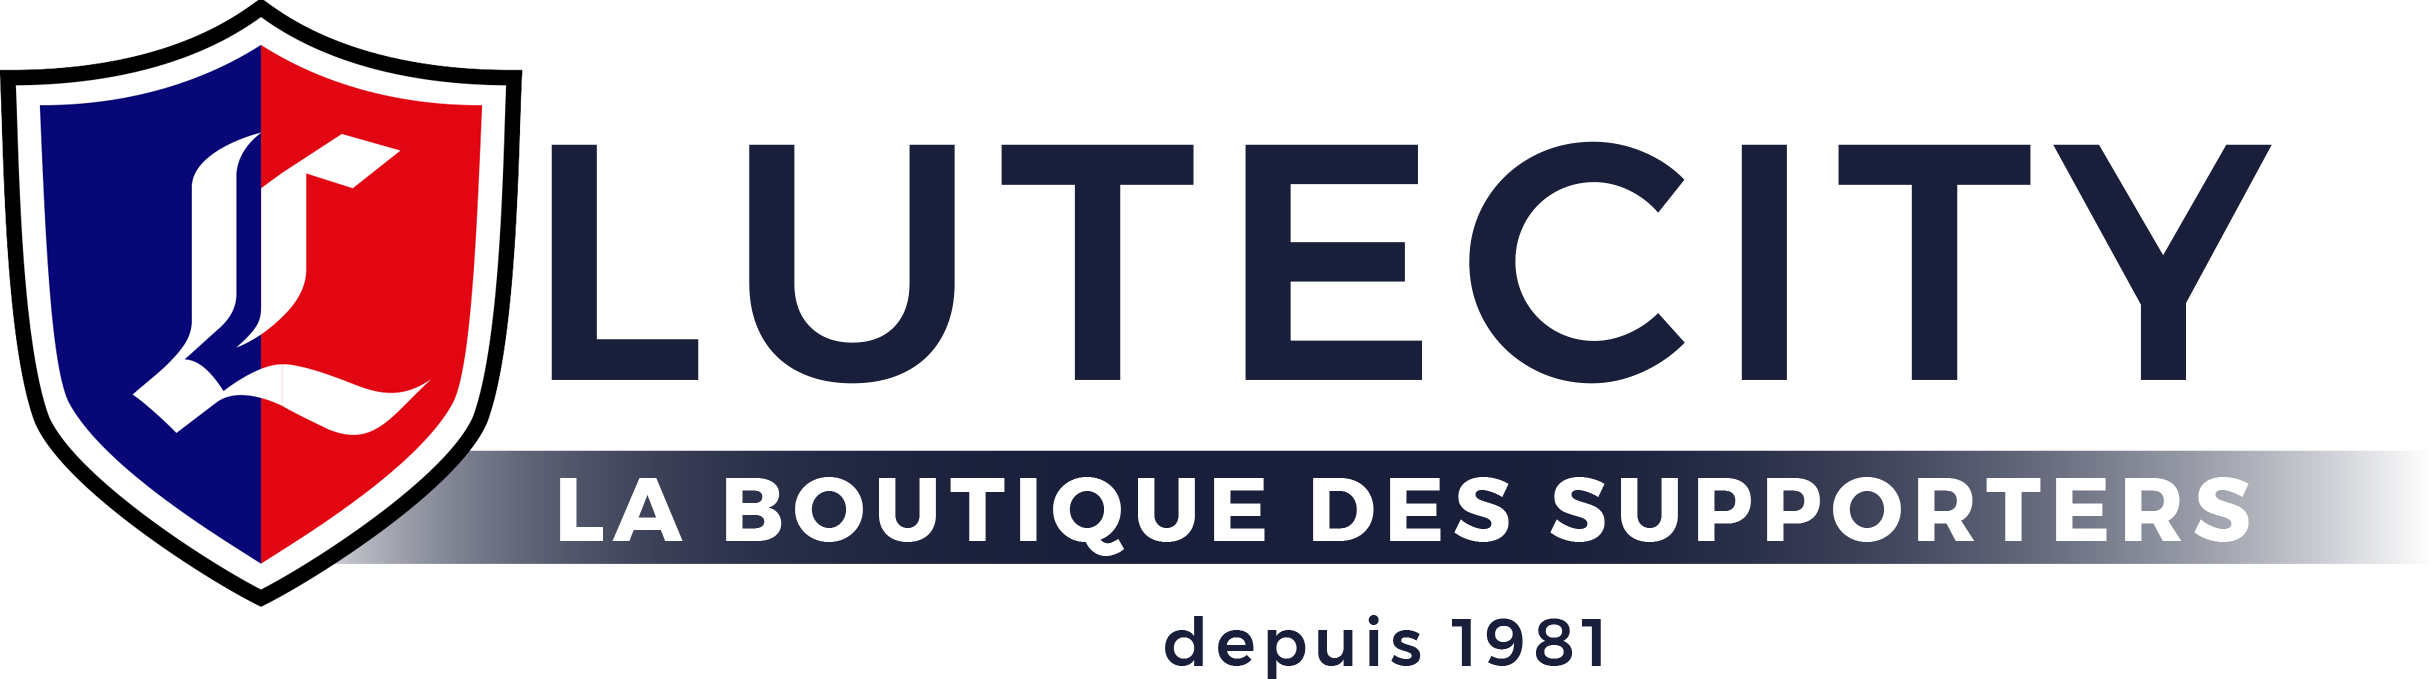 Lutecity - La Boutique Des Supporters